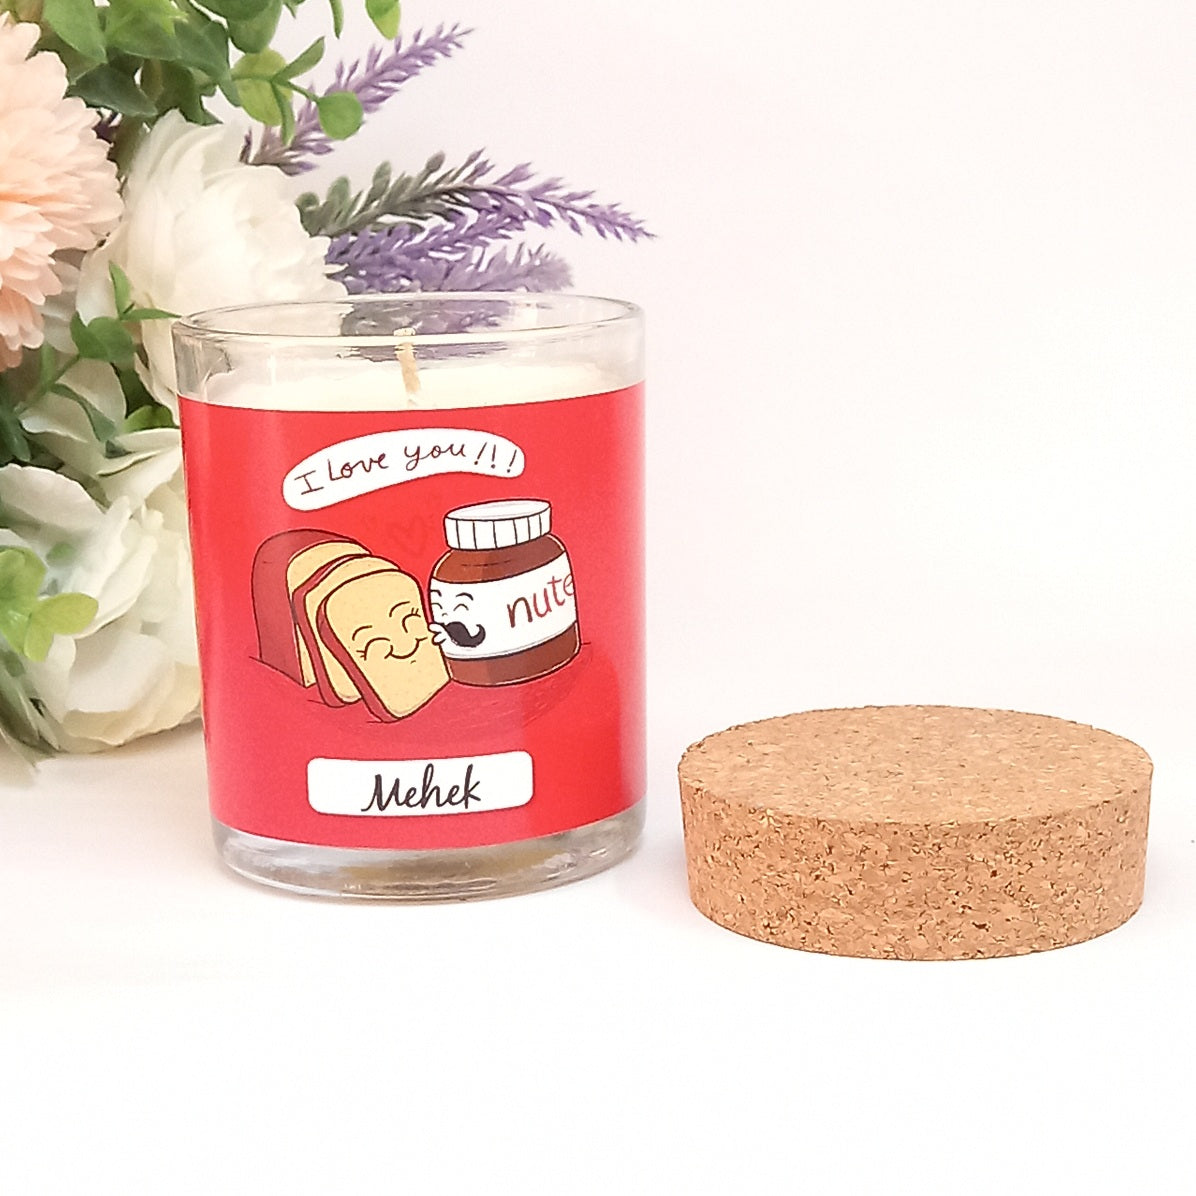 I Love You Personalised Candle